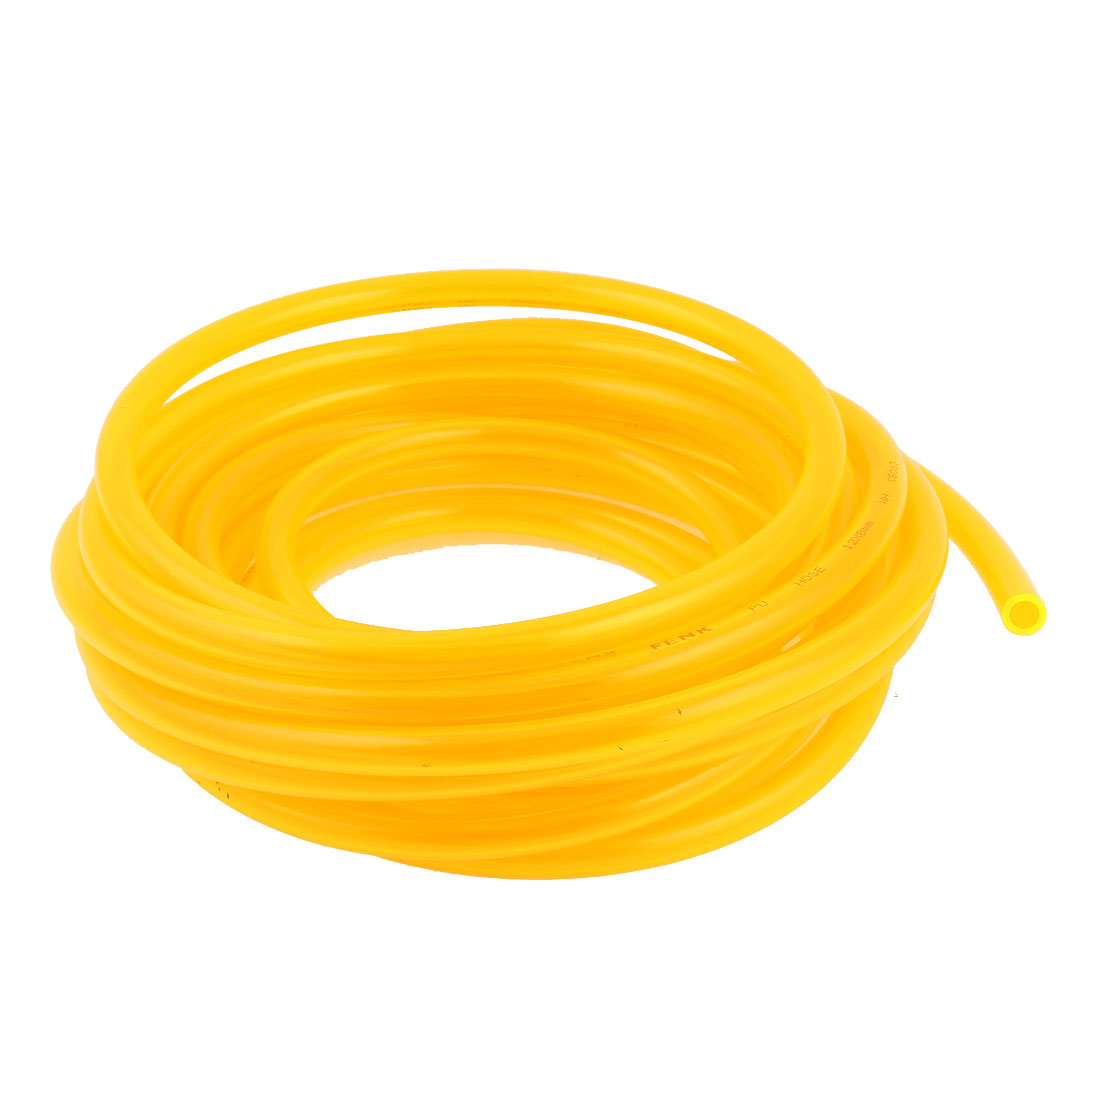 5m 16.4ft 12mmx8mm Pneumatic Polyurethane PU Hose Tube Pipe Clear Yellow